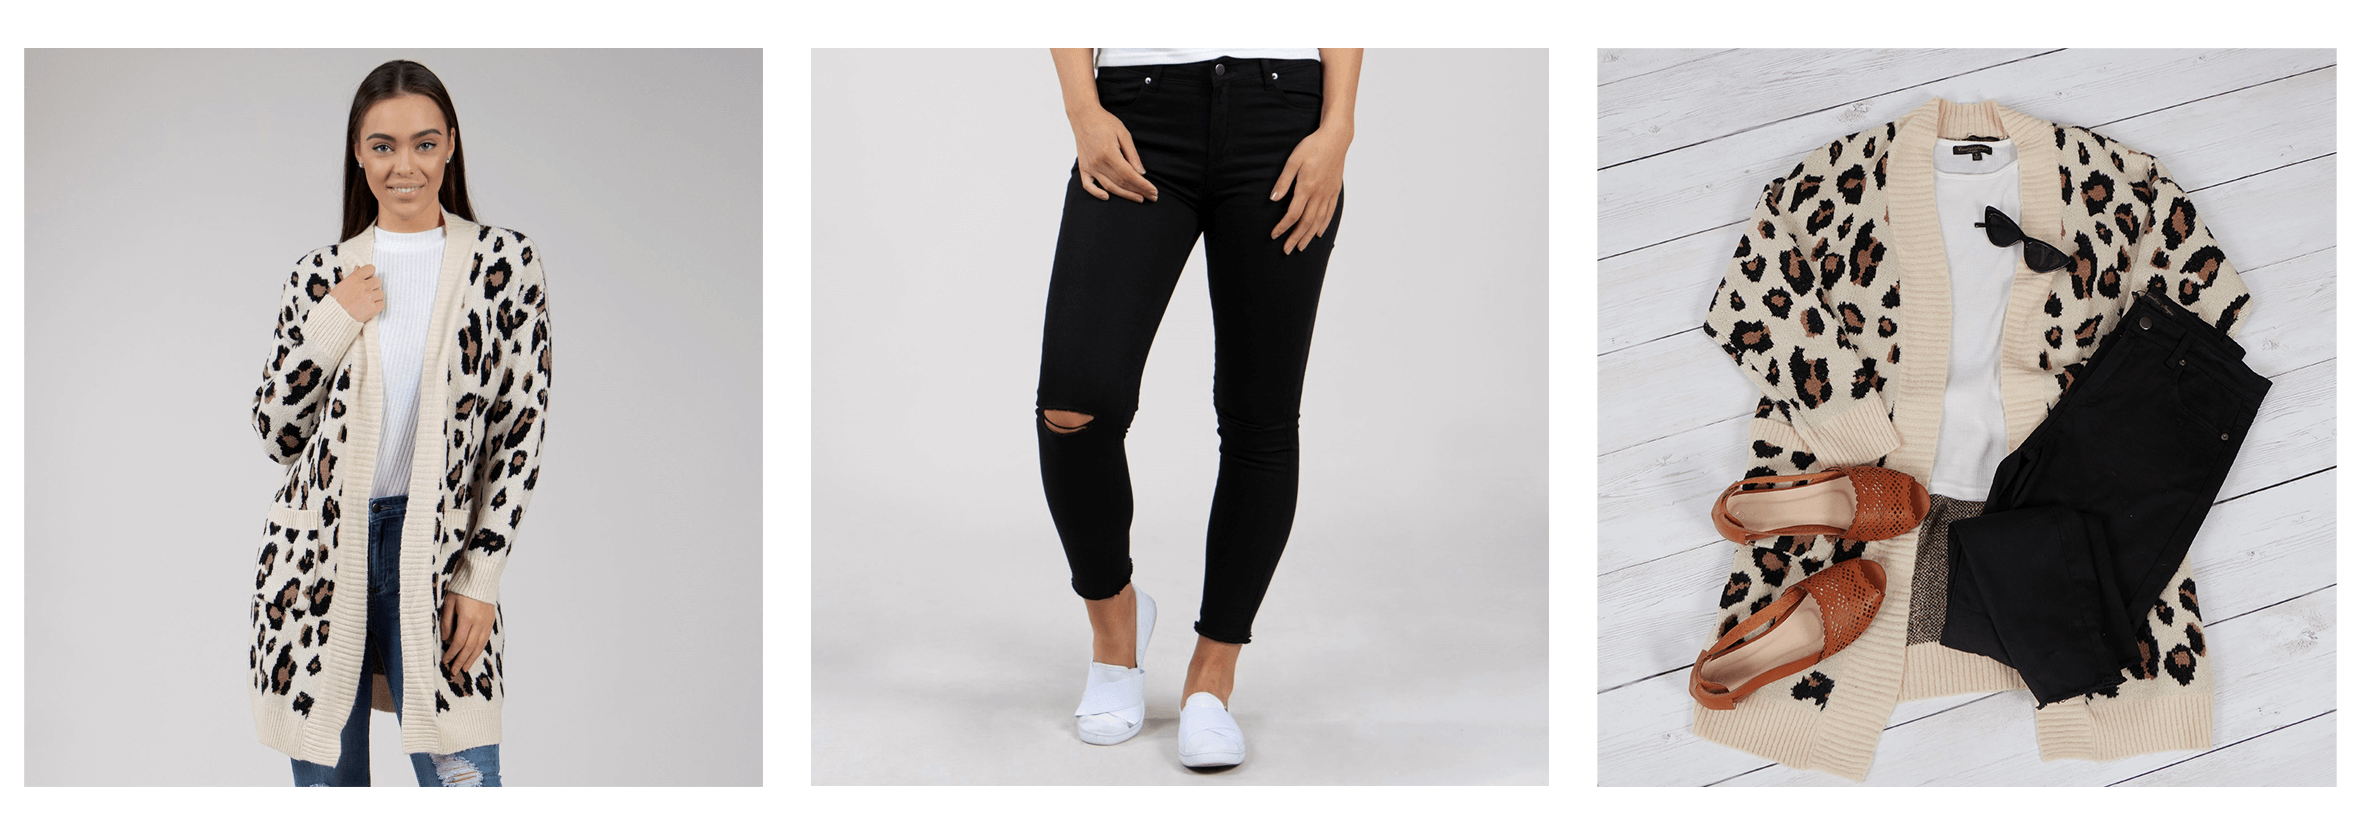 EOFYS Blowout - Outfit Under $100 - Femme Connection